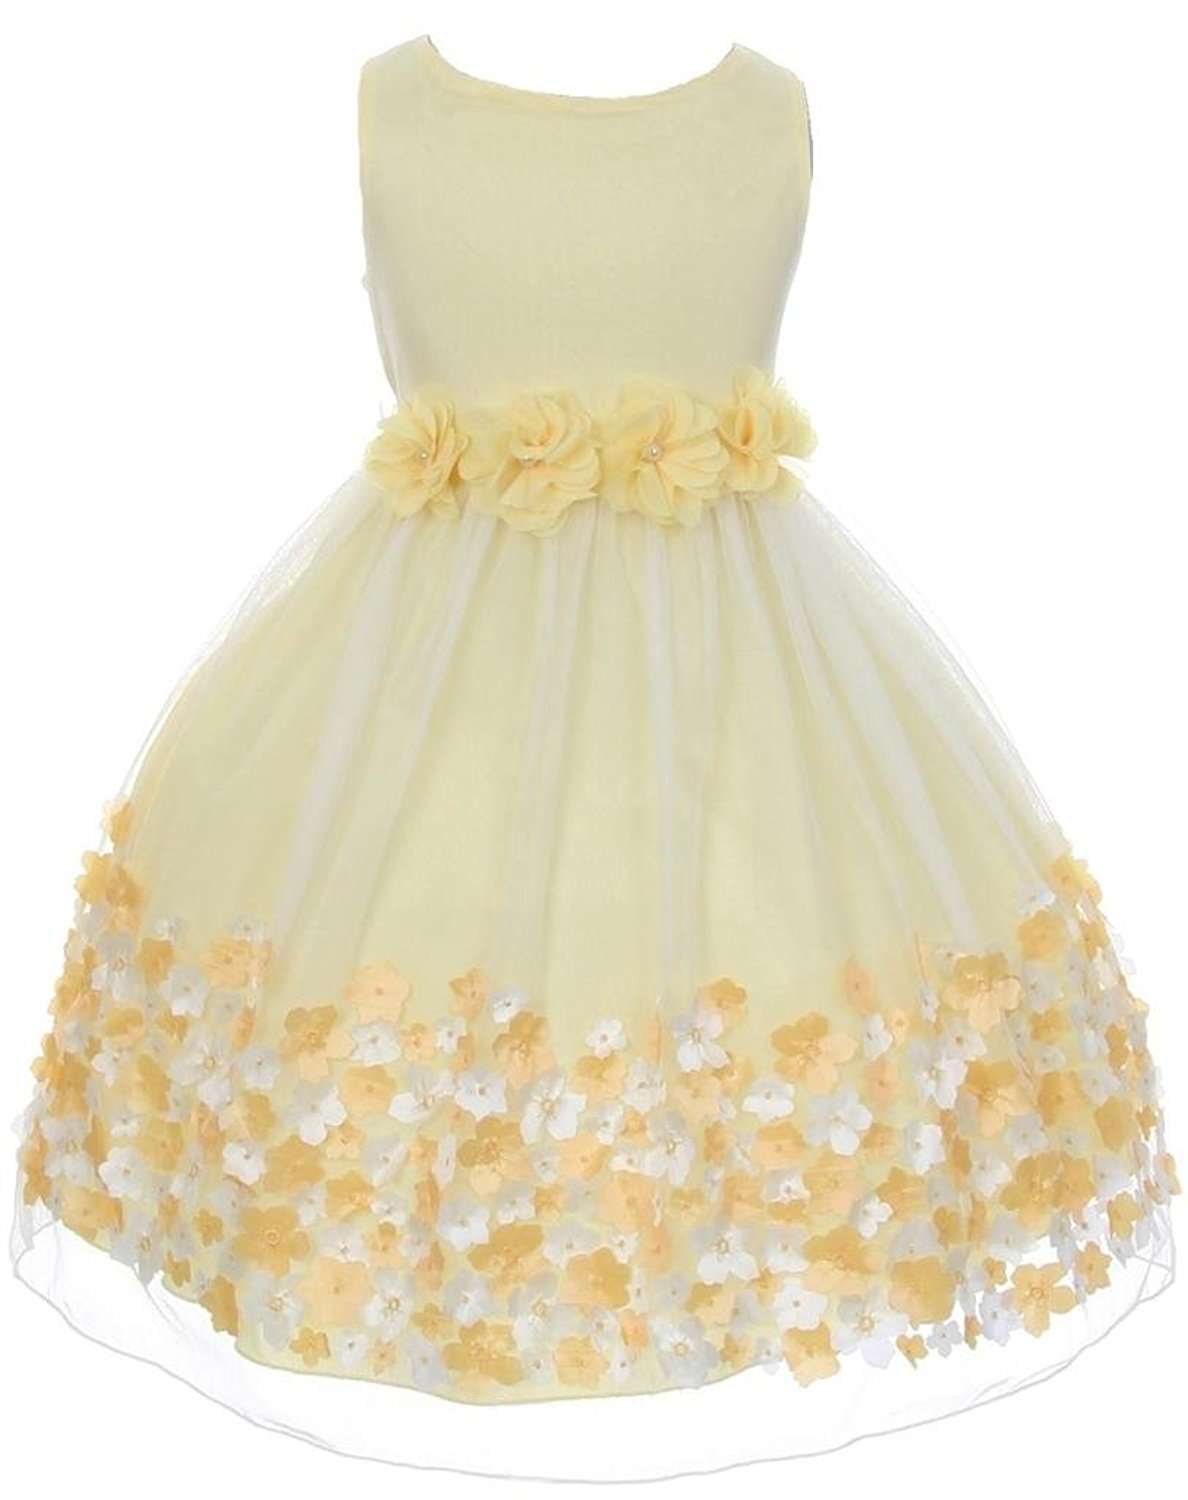 Cheap Yellow Easter Dresses For Girls Find Yellow Easter Dresses